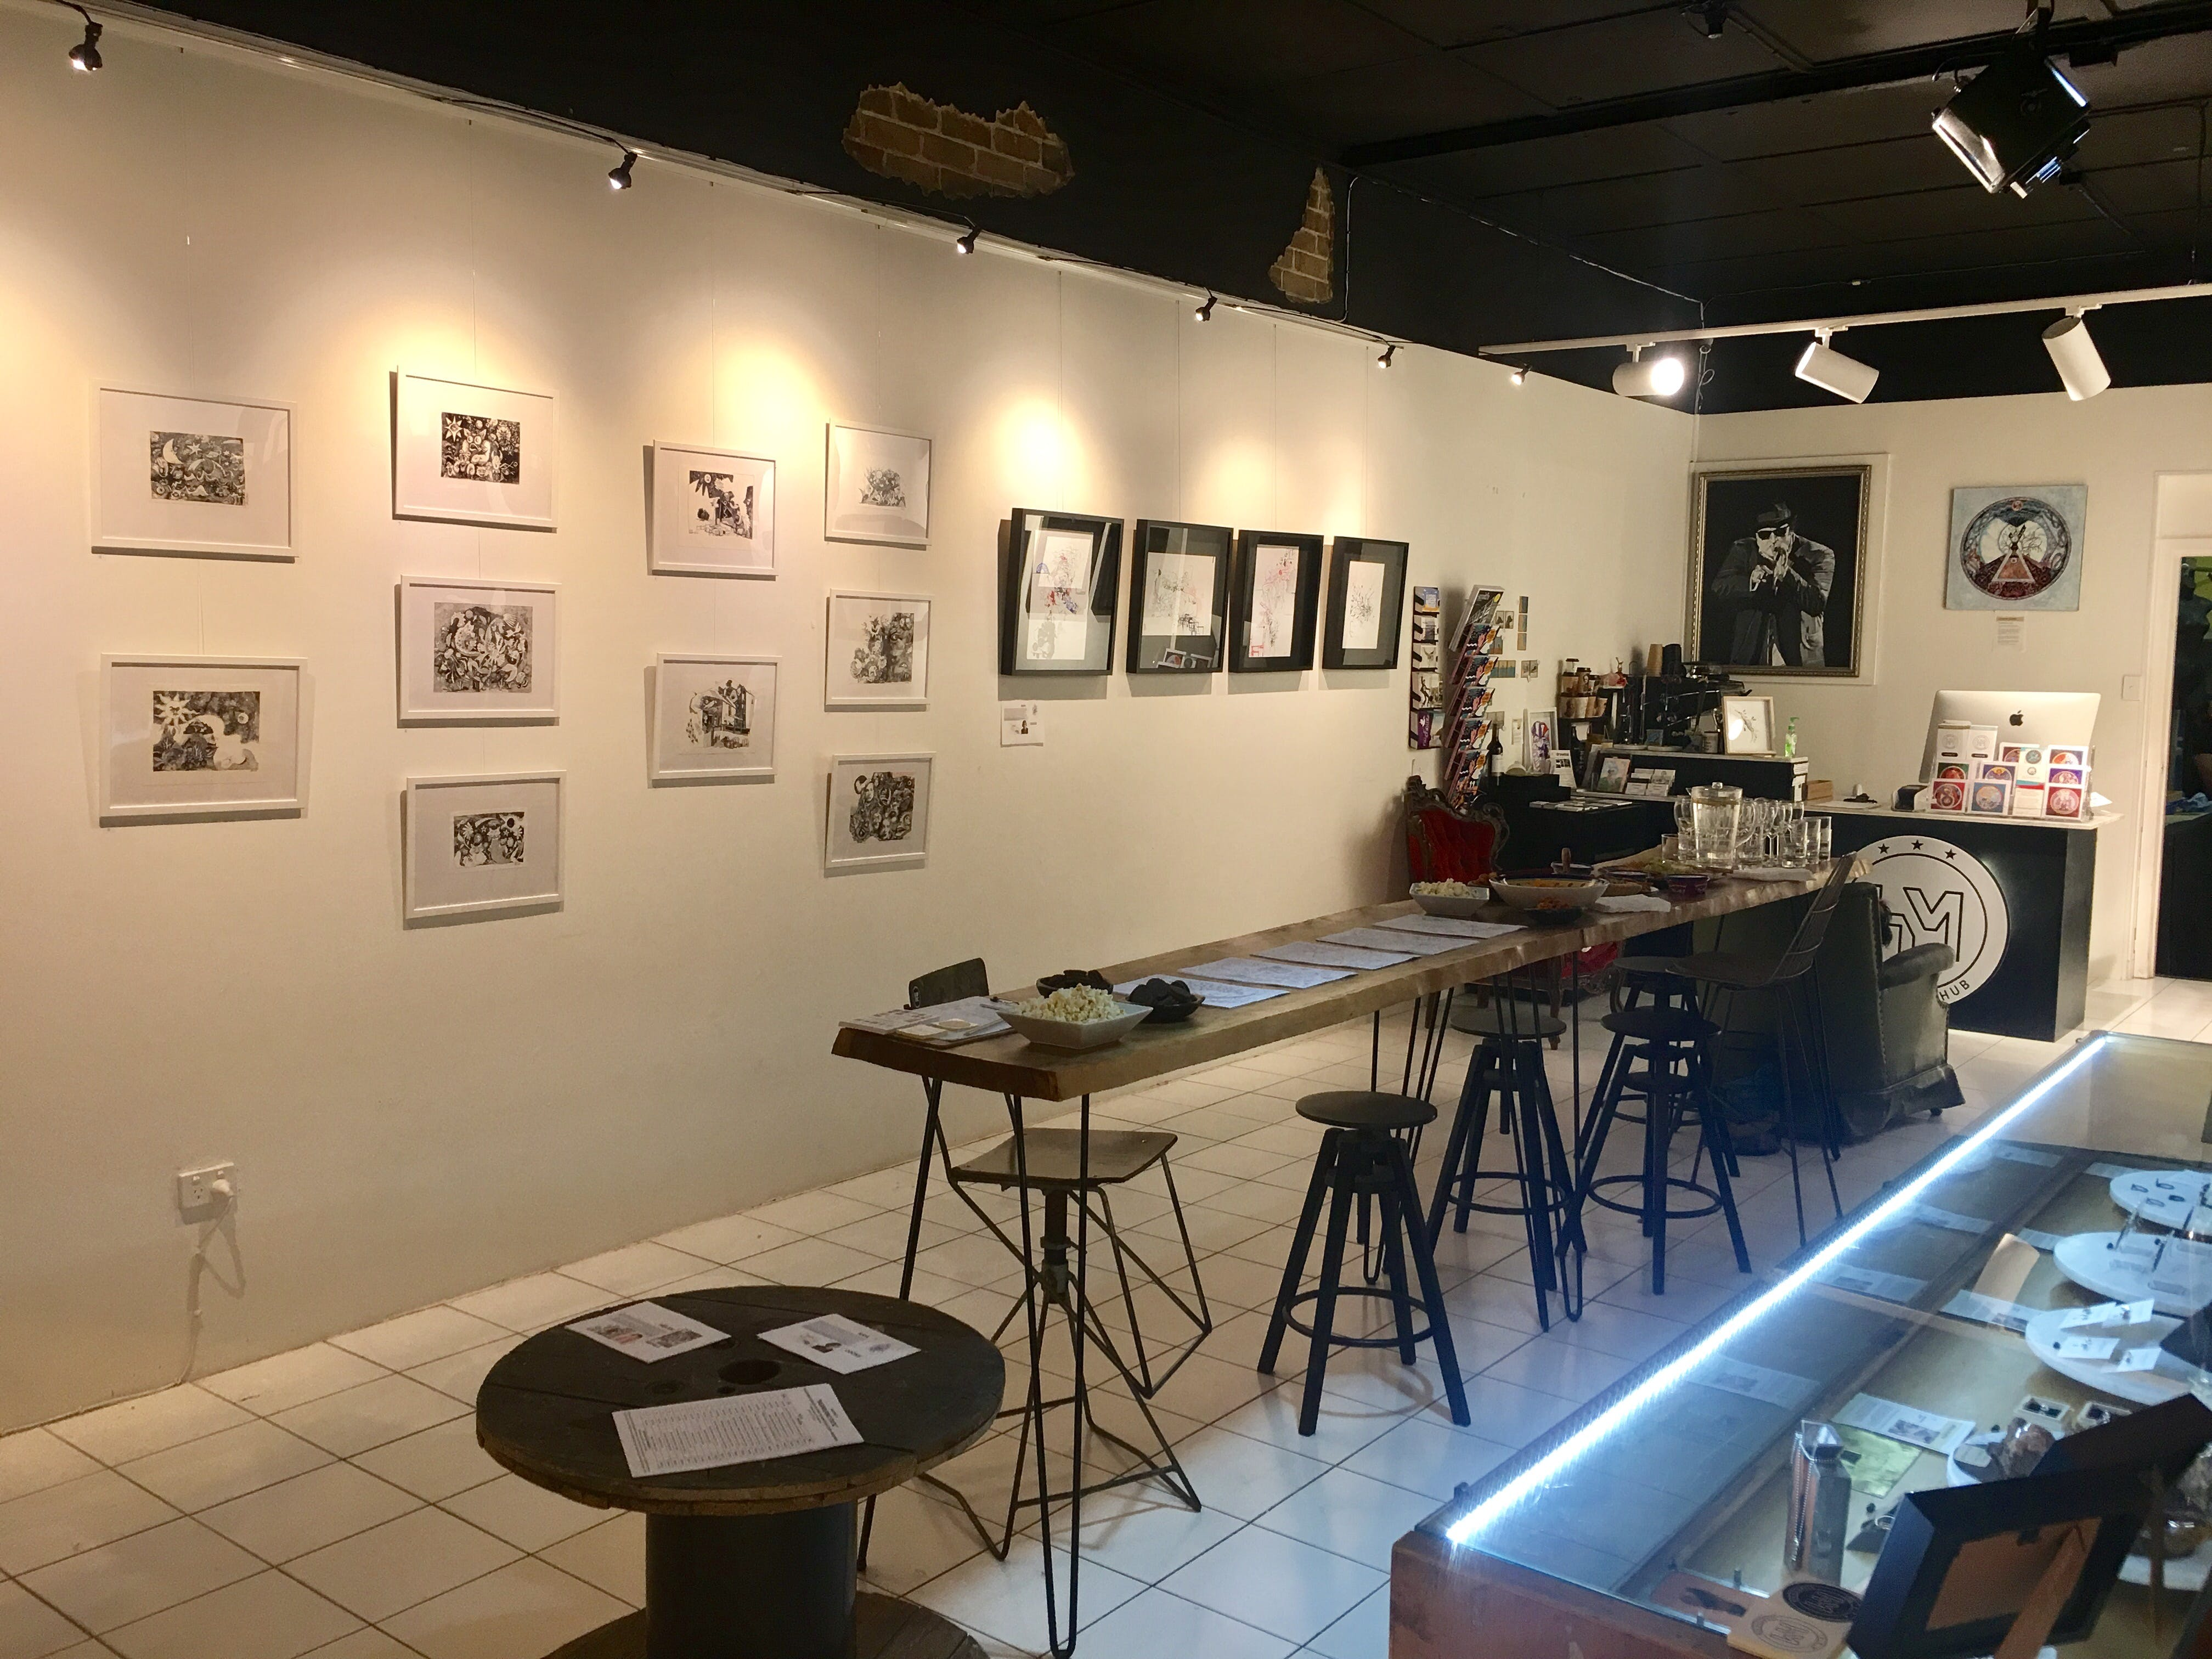 Exhibition Space, gallery at Hypmotive Hub, image 1